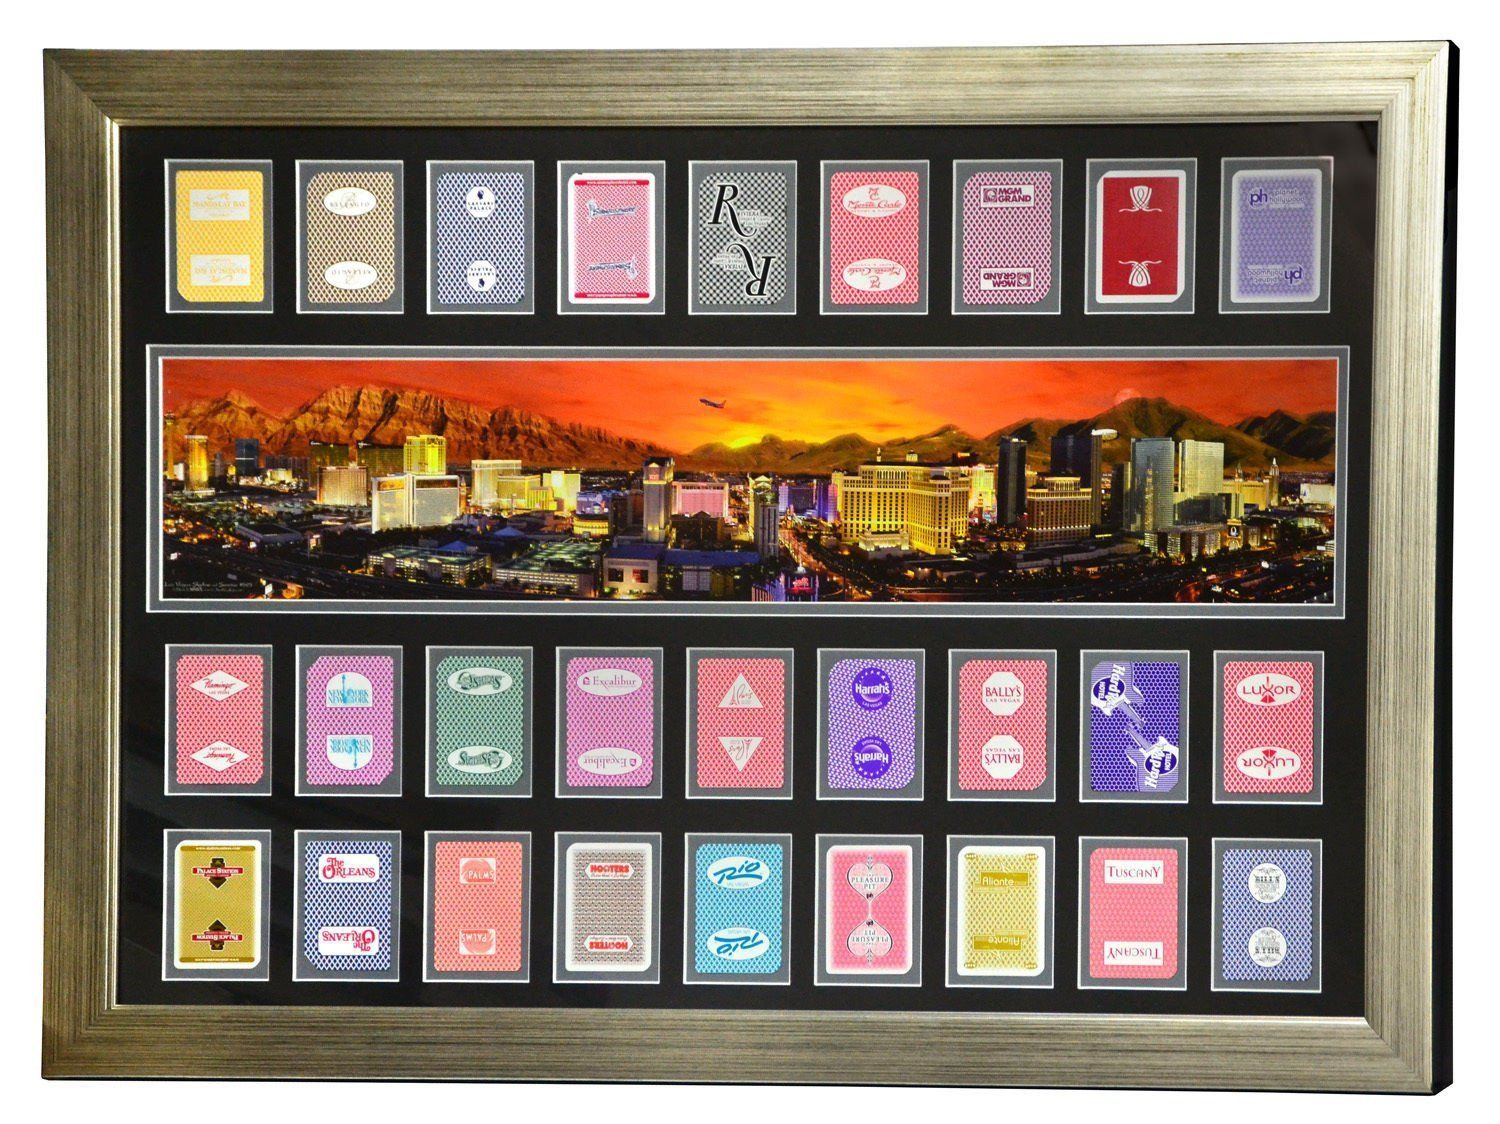 Las vegas hotels authentic 27 playing cards collage framed